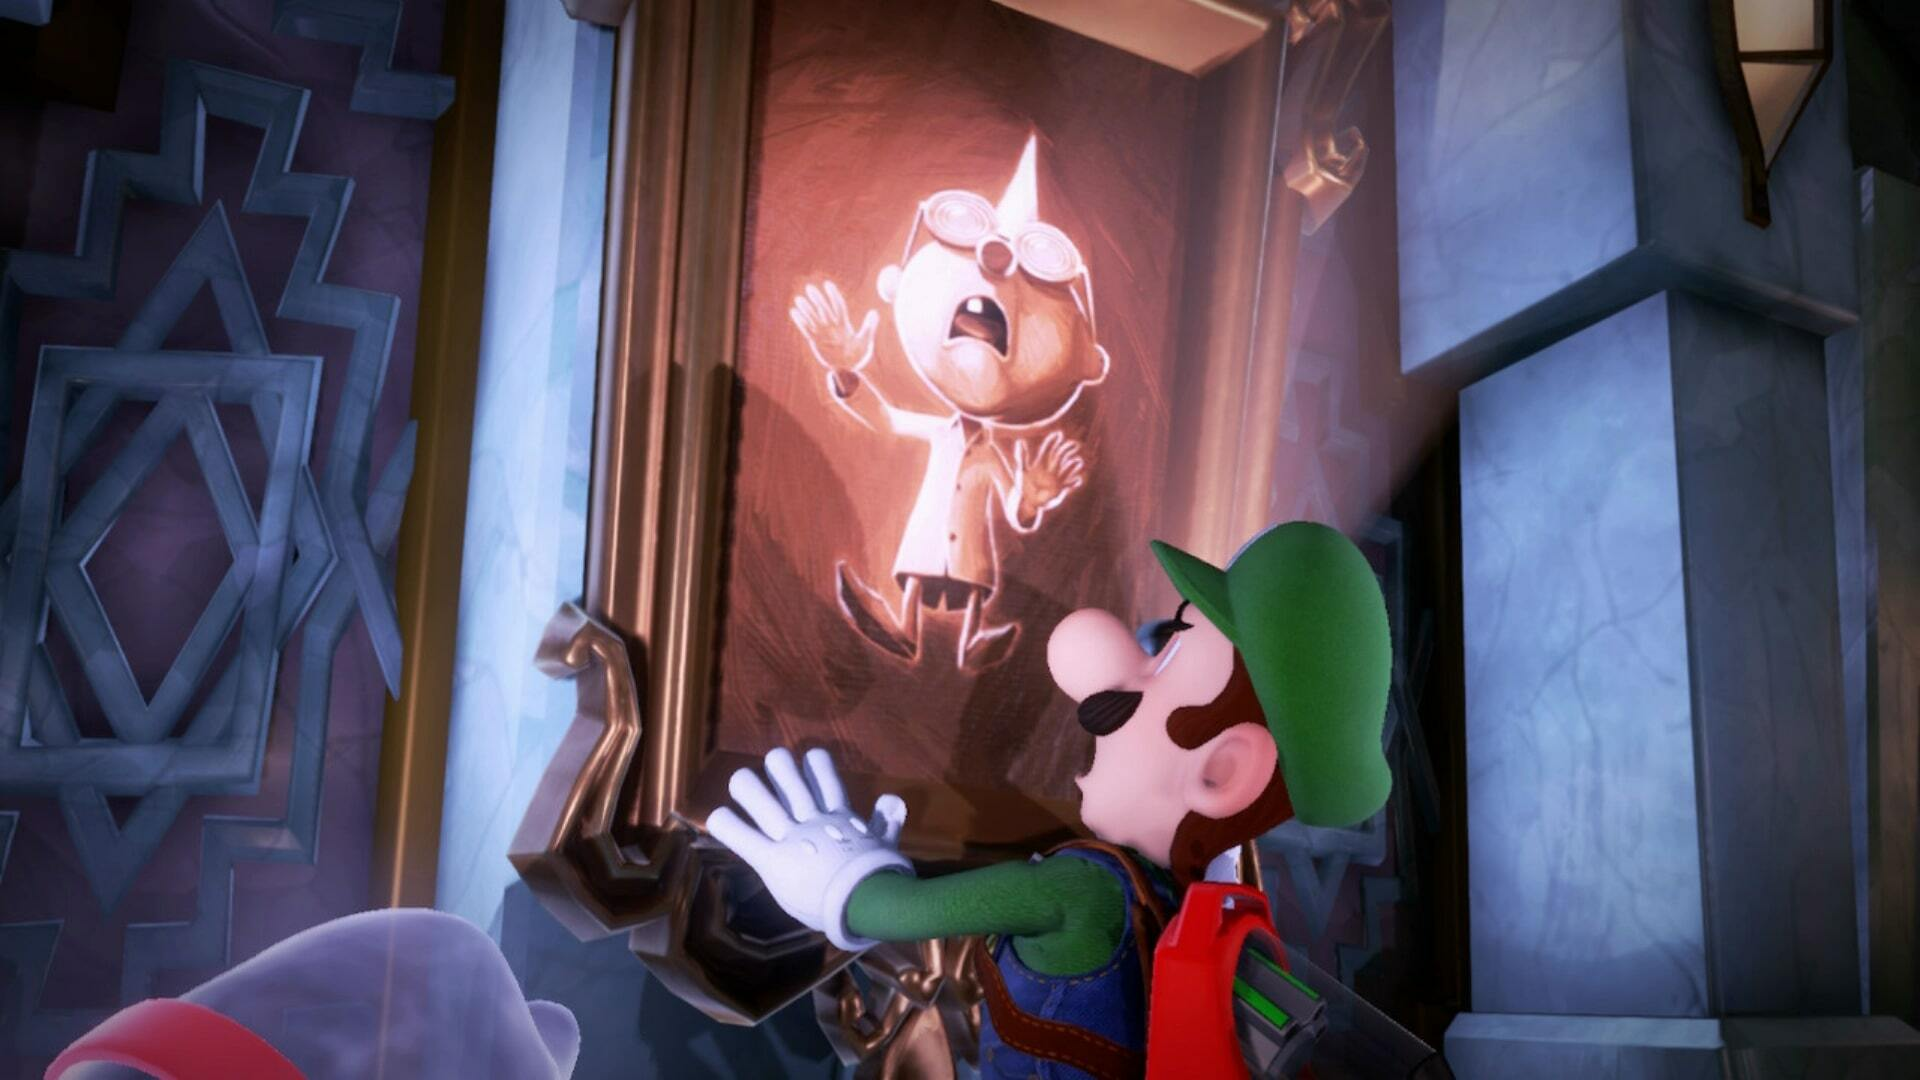 Luigi's Mansion 3 Thorny Bathroom: How to Clear the Thorns From the Toilet